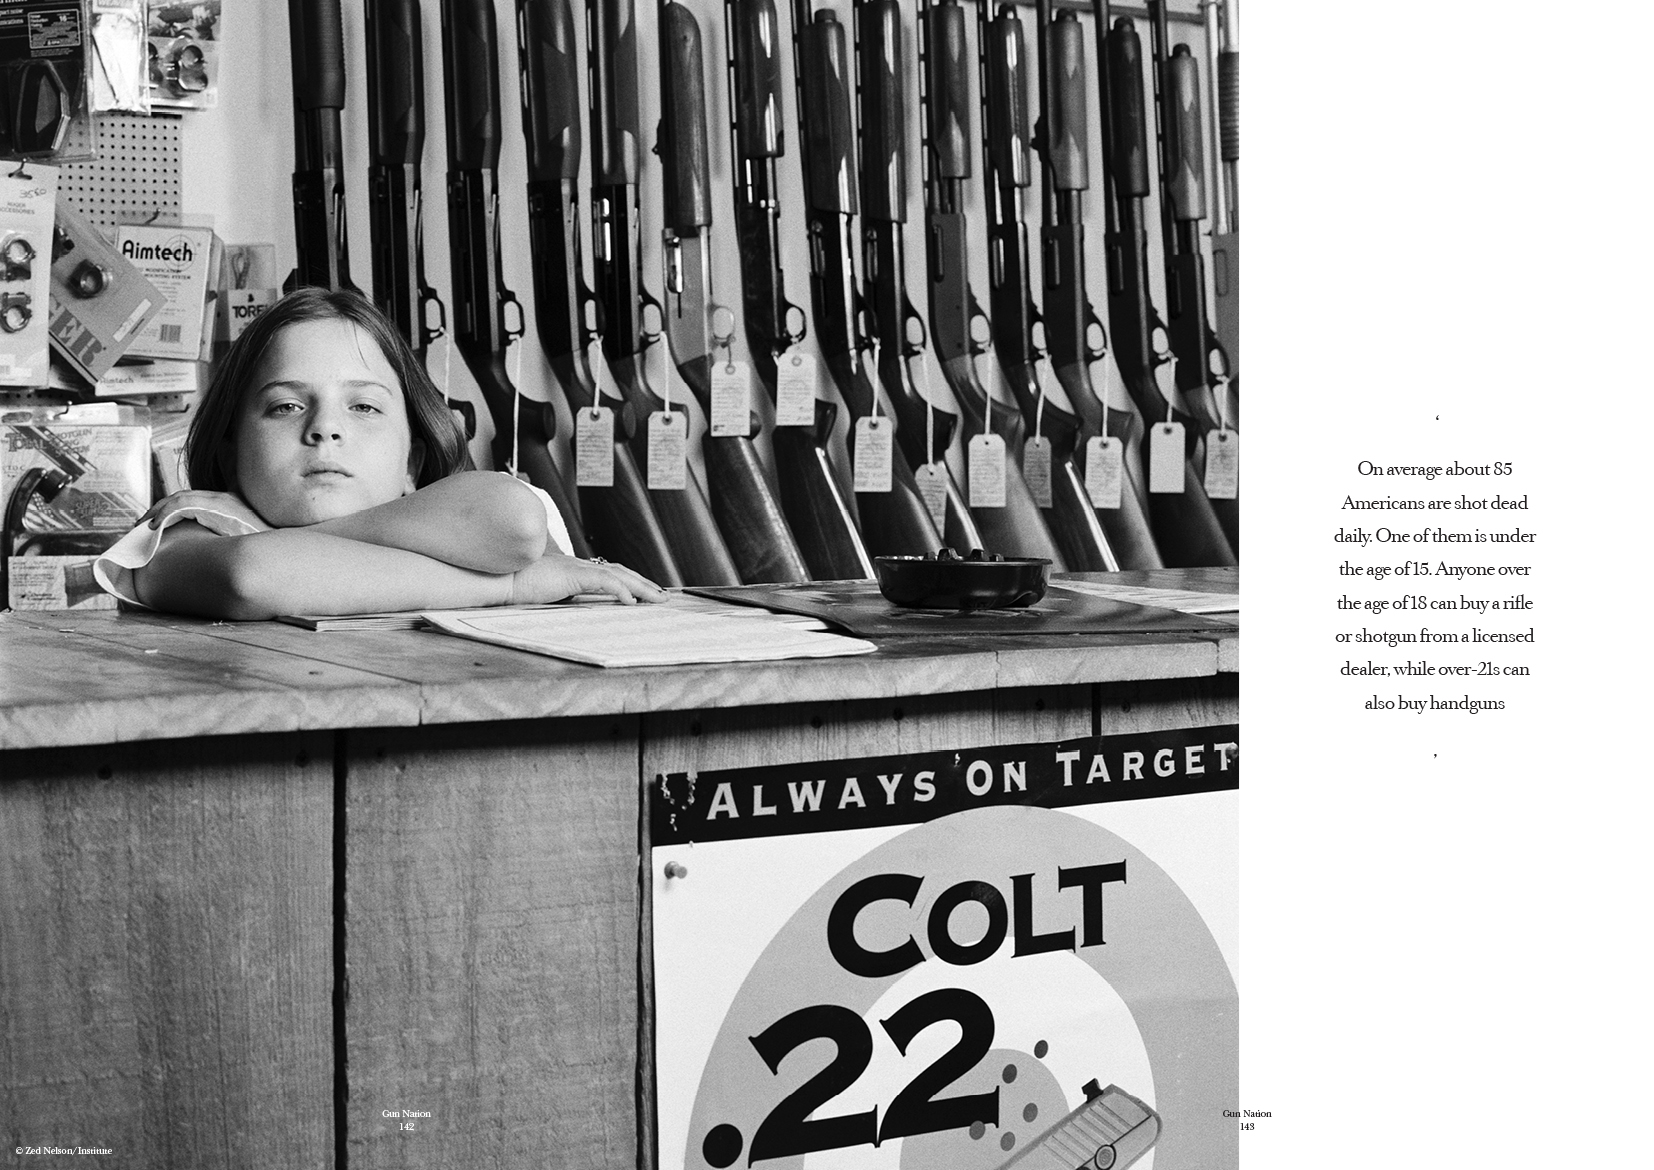 Gun Nation feature, photography by Zed Turner